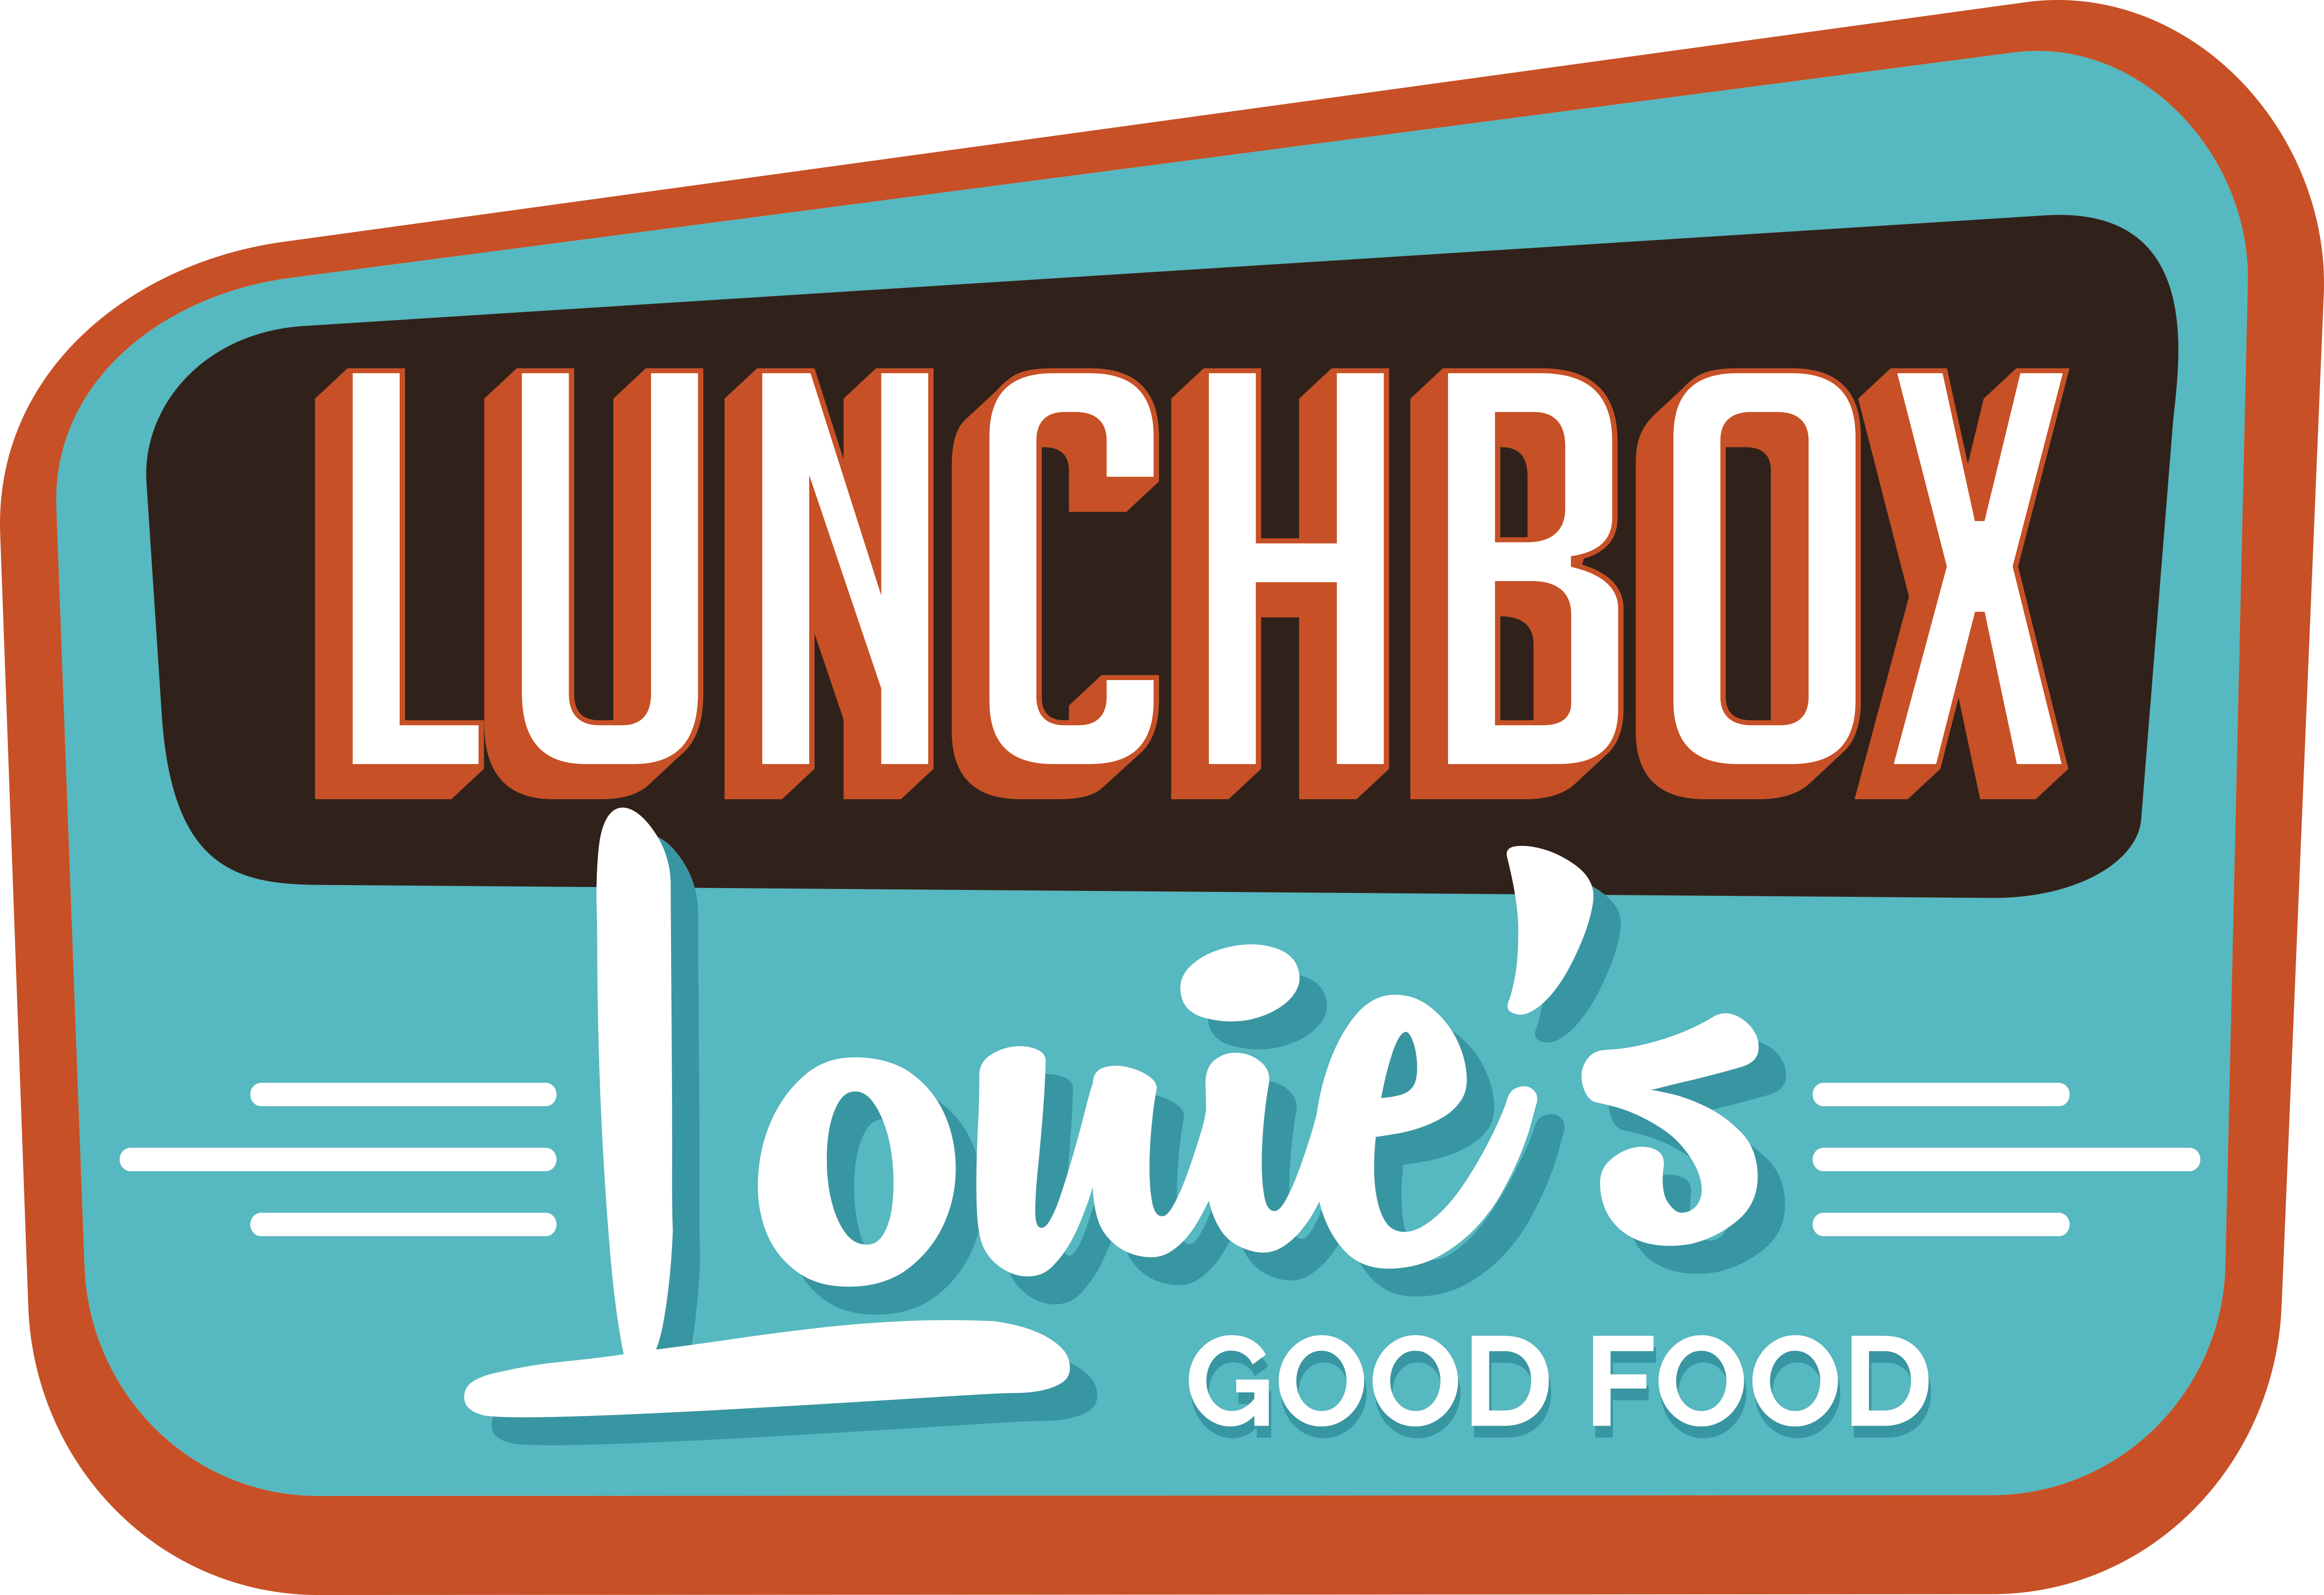 Lunchbox clipart lunch hour. Louie s